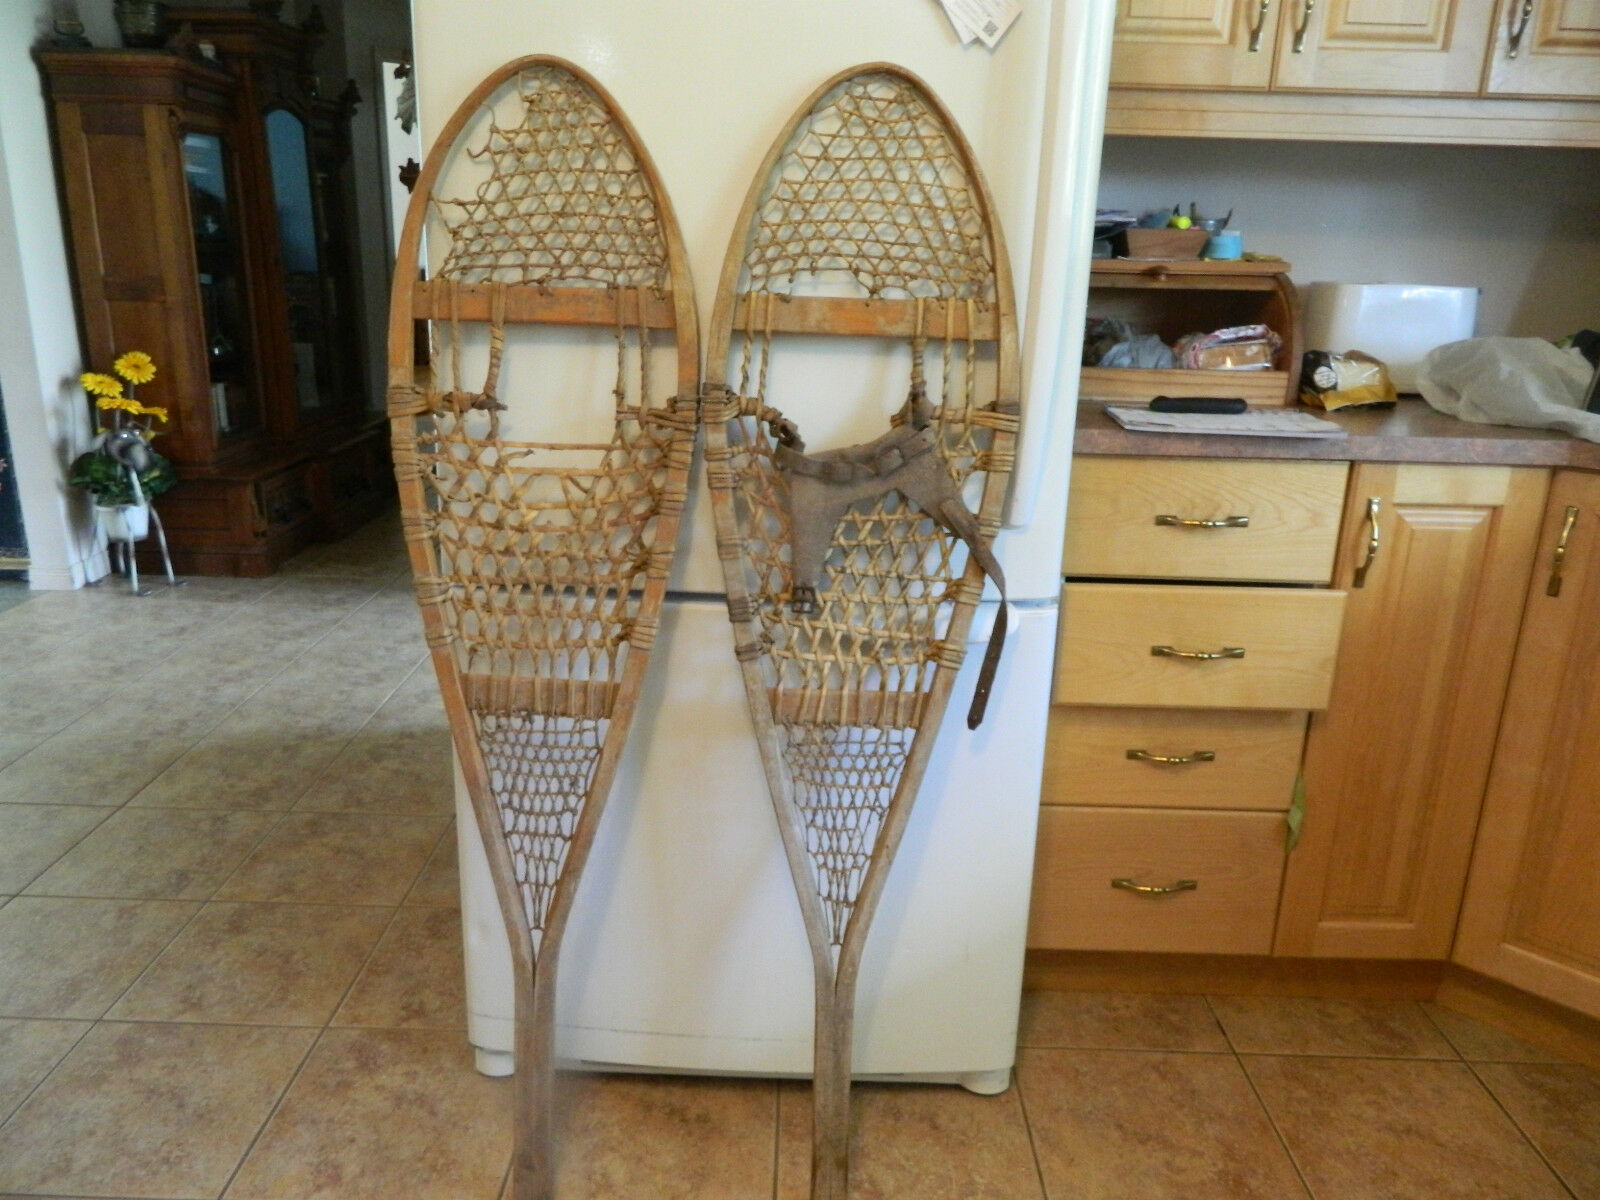 Vintage  snowshoes       13 x  52   chalet decor as is    lot 502  counter genuine